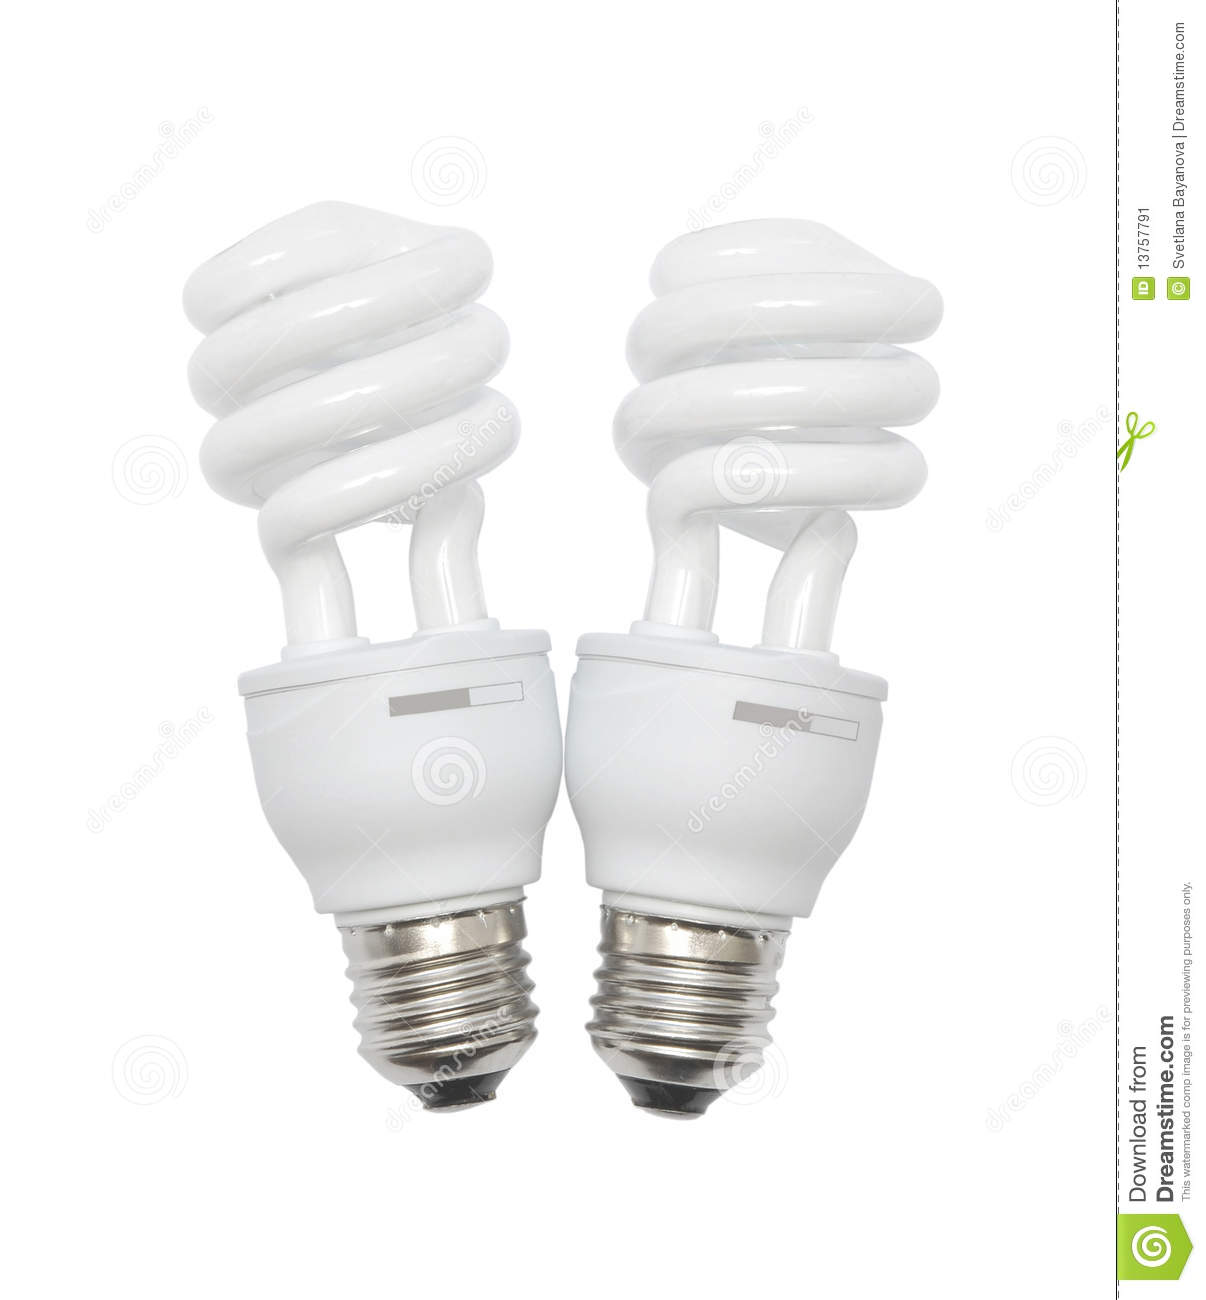 modern energy saving light bulbs isolated on white background. Black Bedroom Furniture Sets. Home Design Ideas